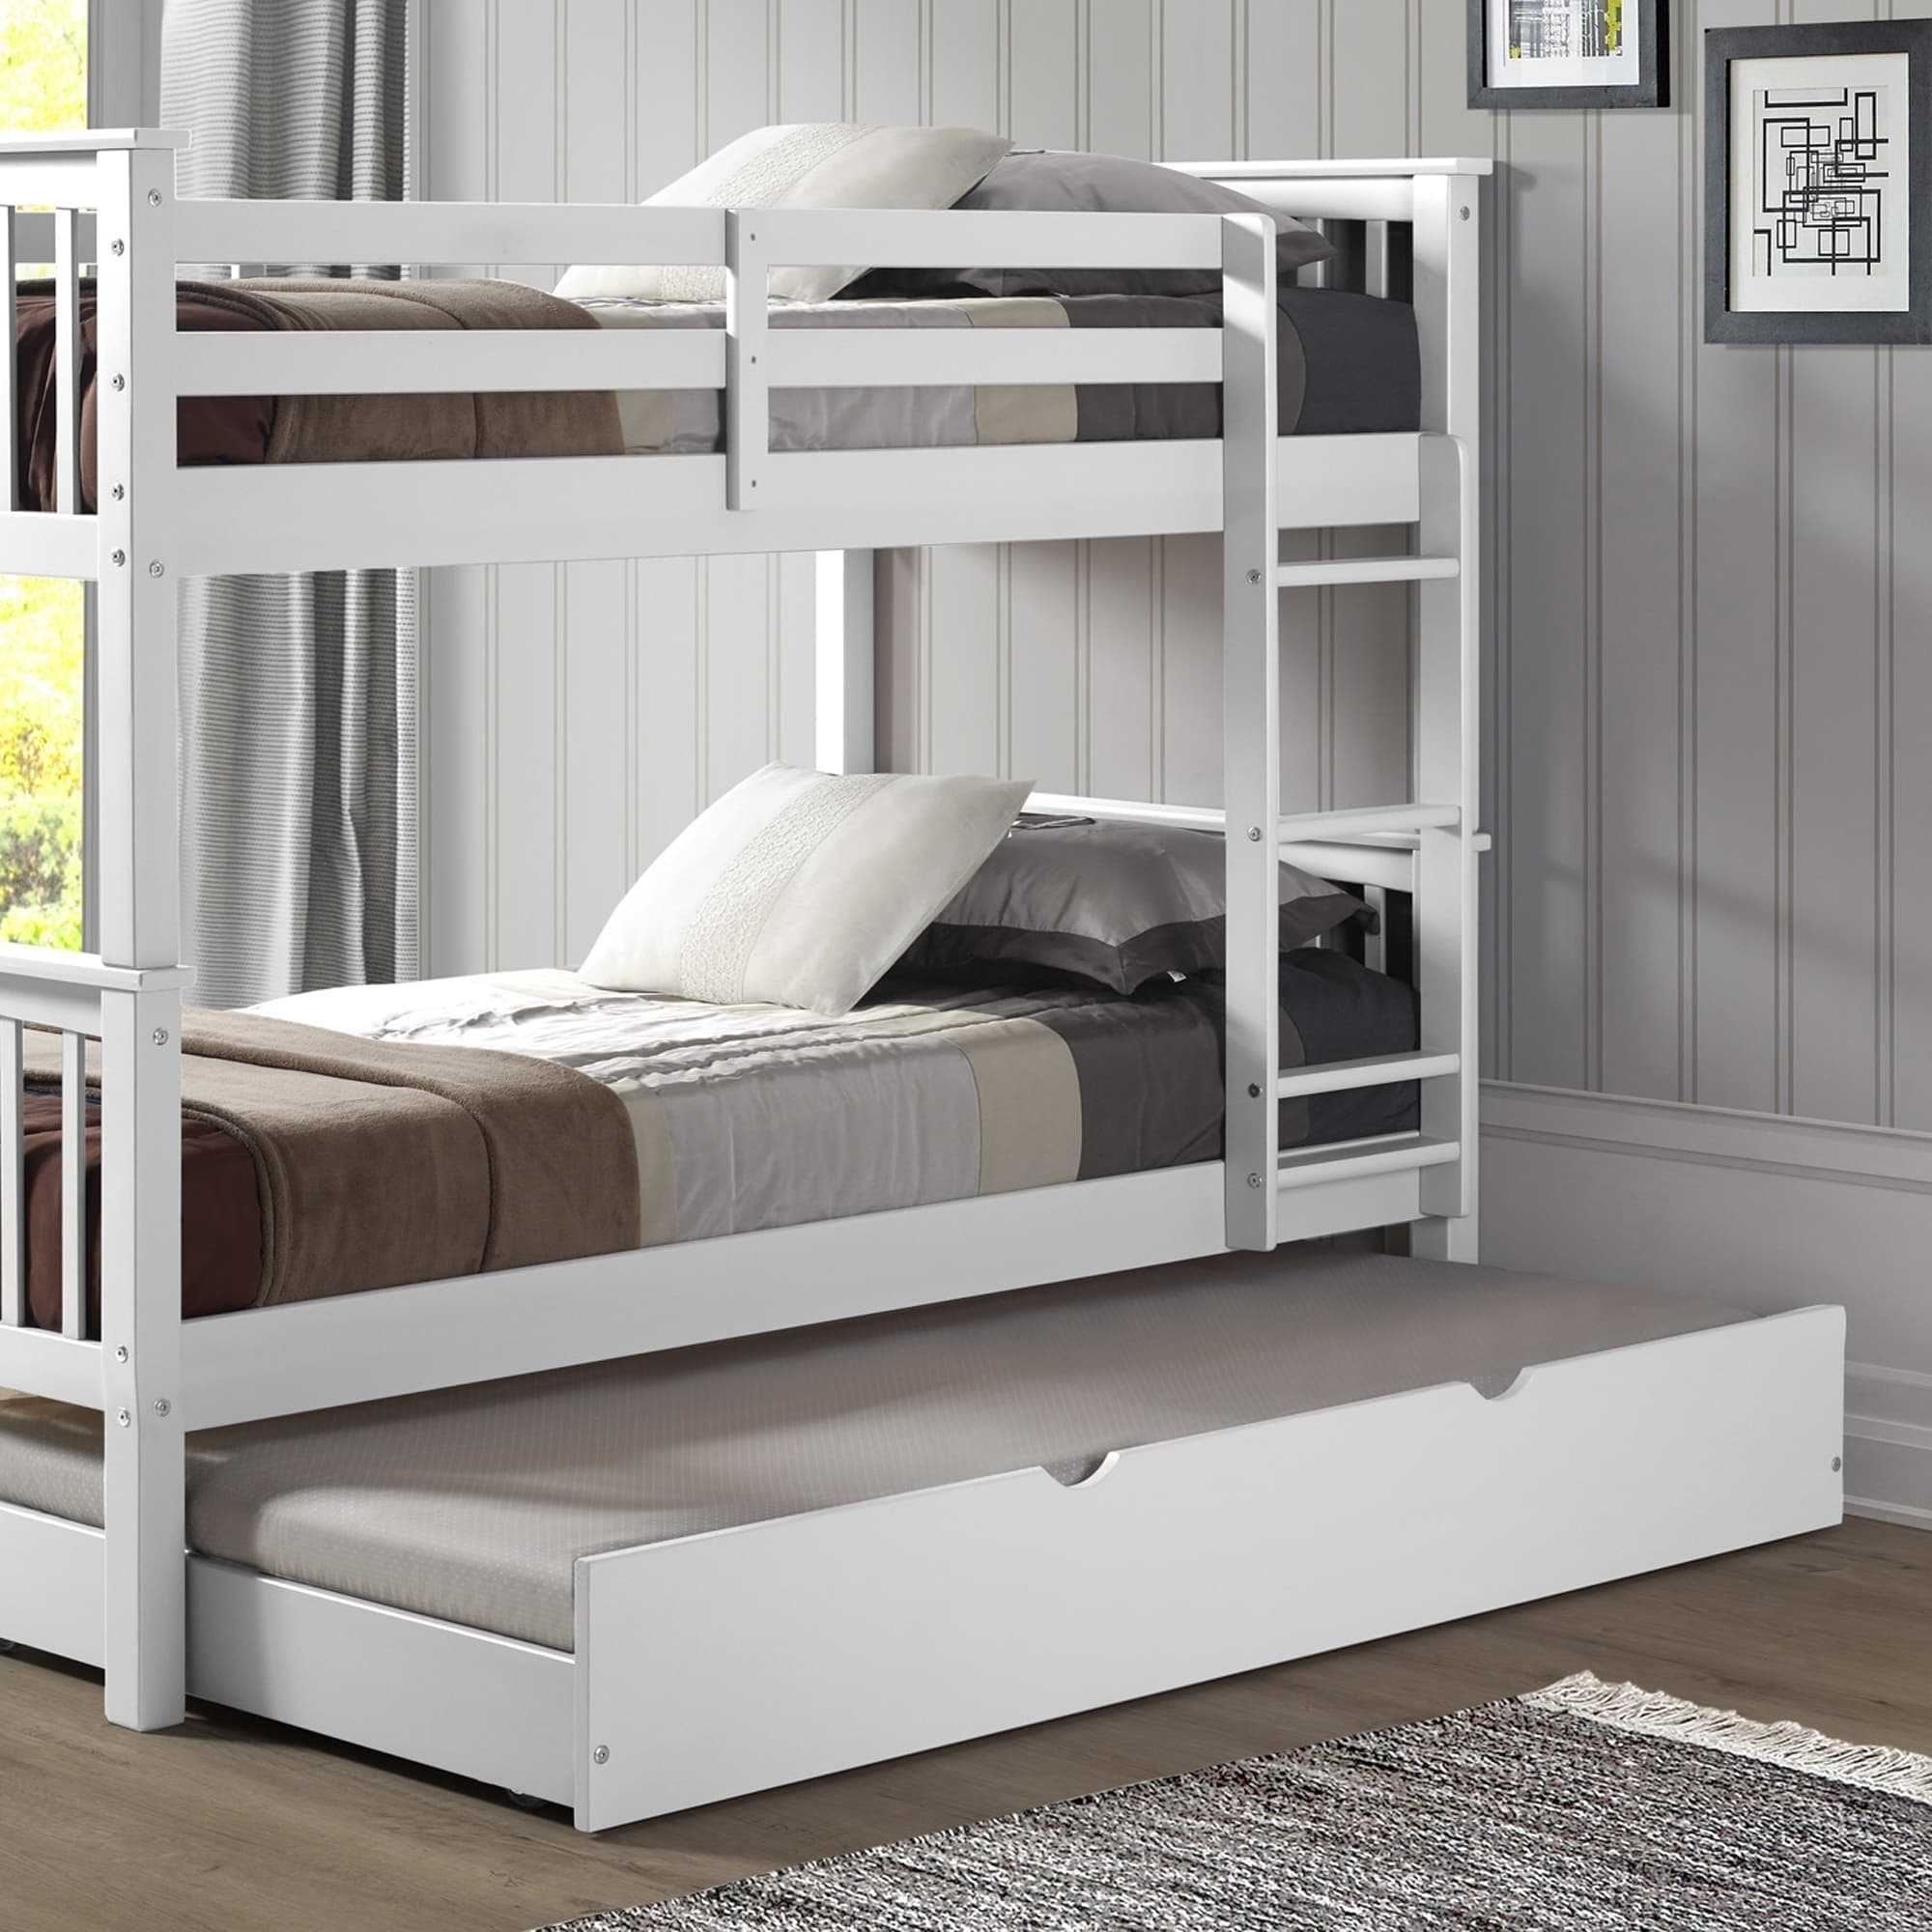 Solid Wood Twin Bunk Bed With Trundle White On Free Shipping Today 14792100